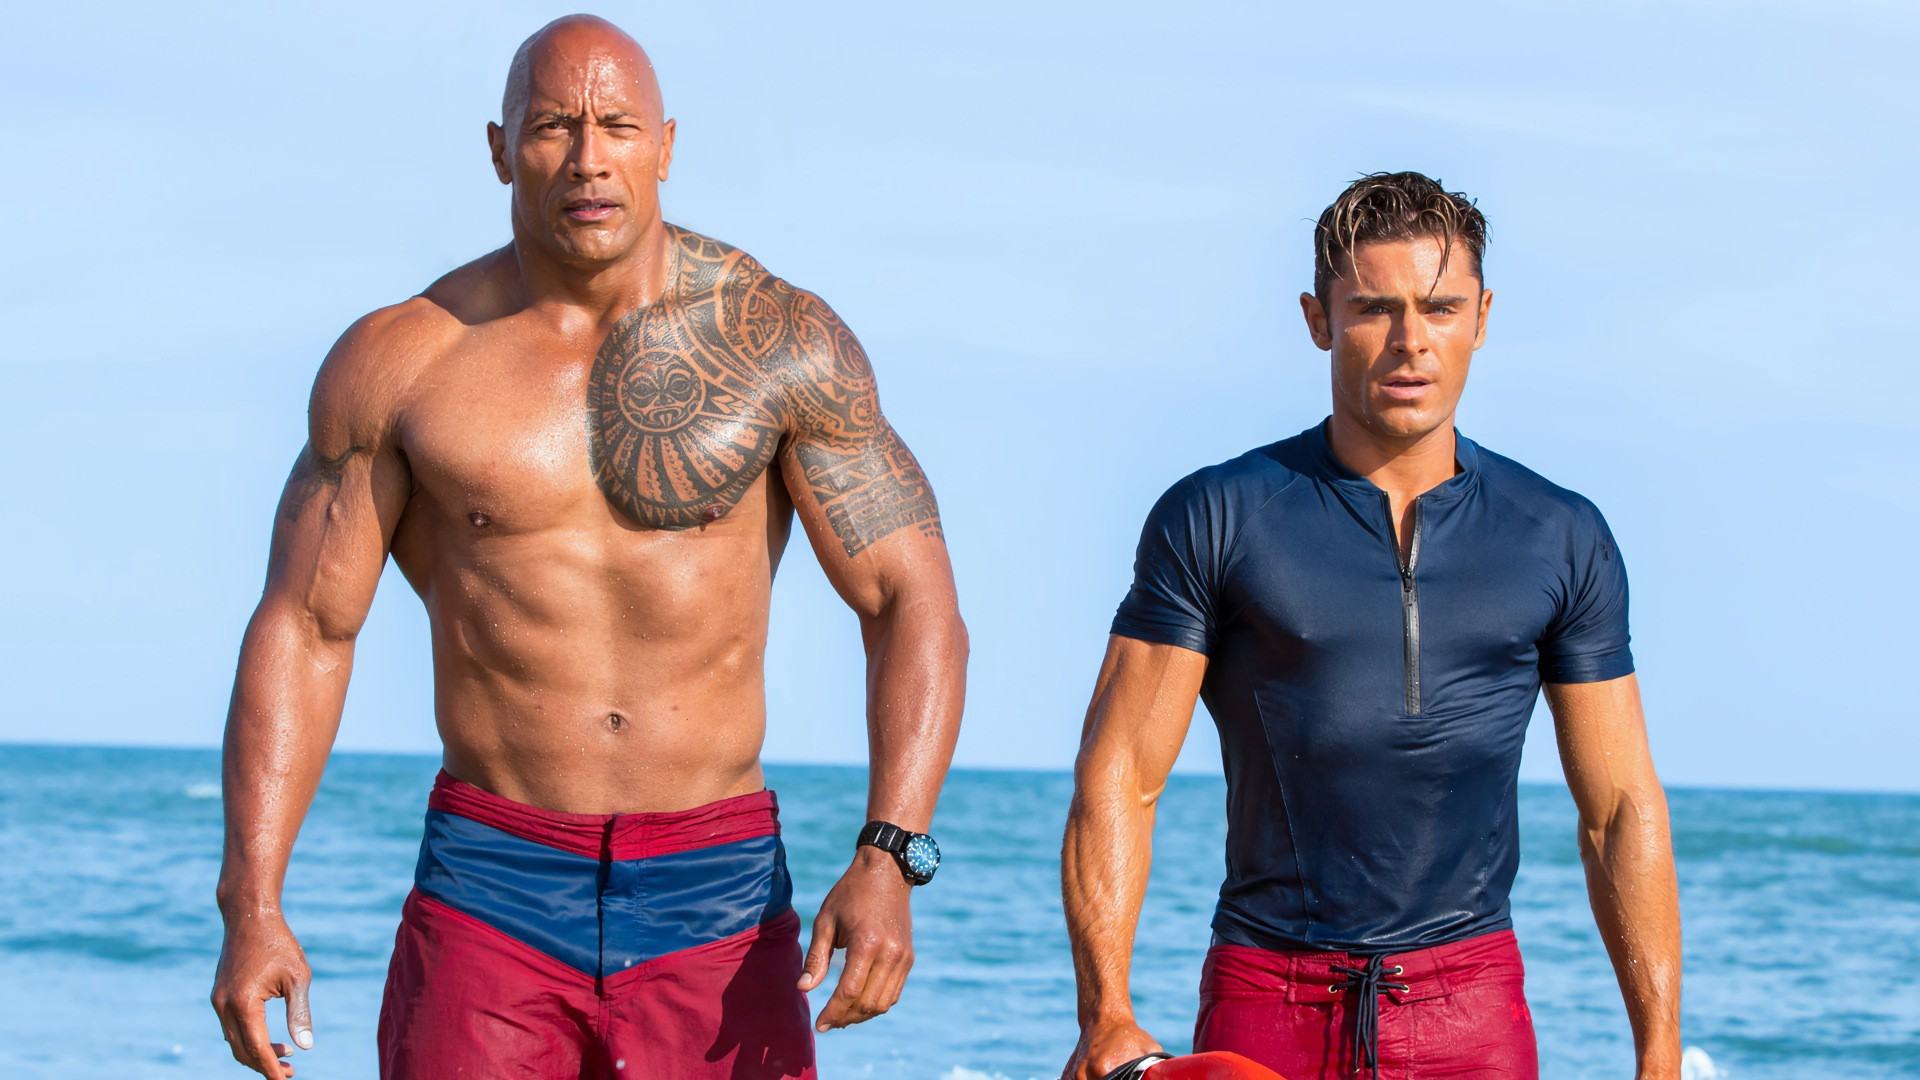 The rock vs zac efron we asked 10 women which baywatch physique the rock vs zac efron we asked 10 women which baywatch physique they prefer why stopboris Choice Image